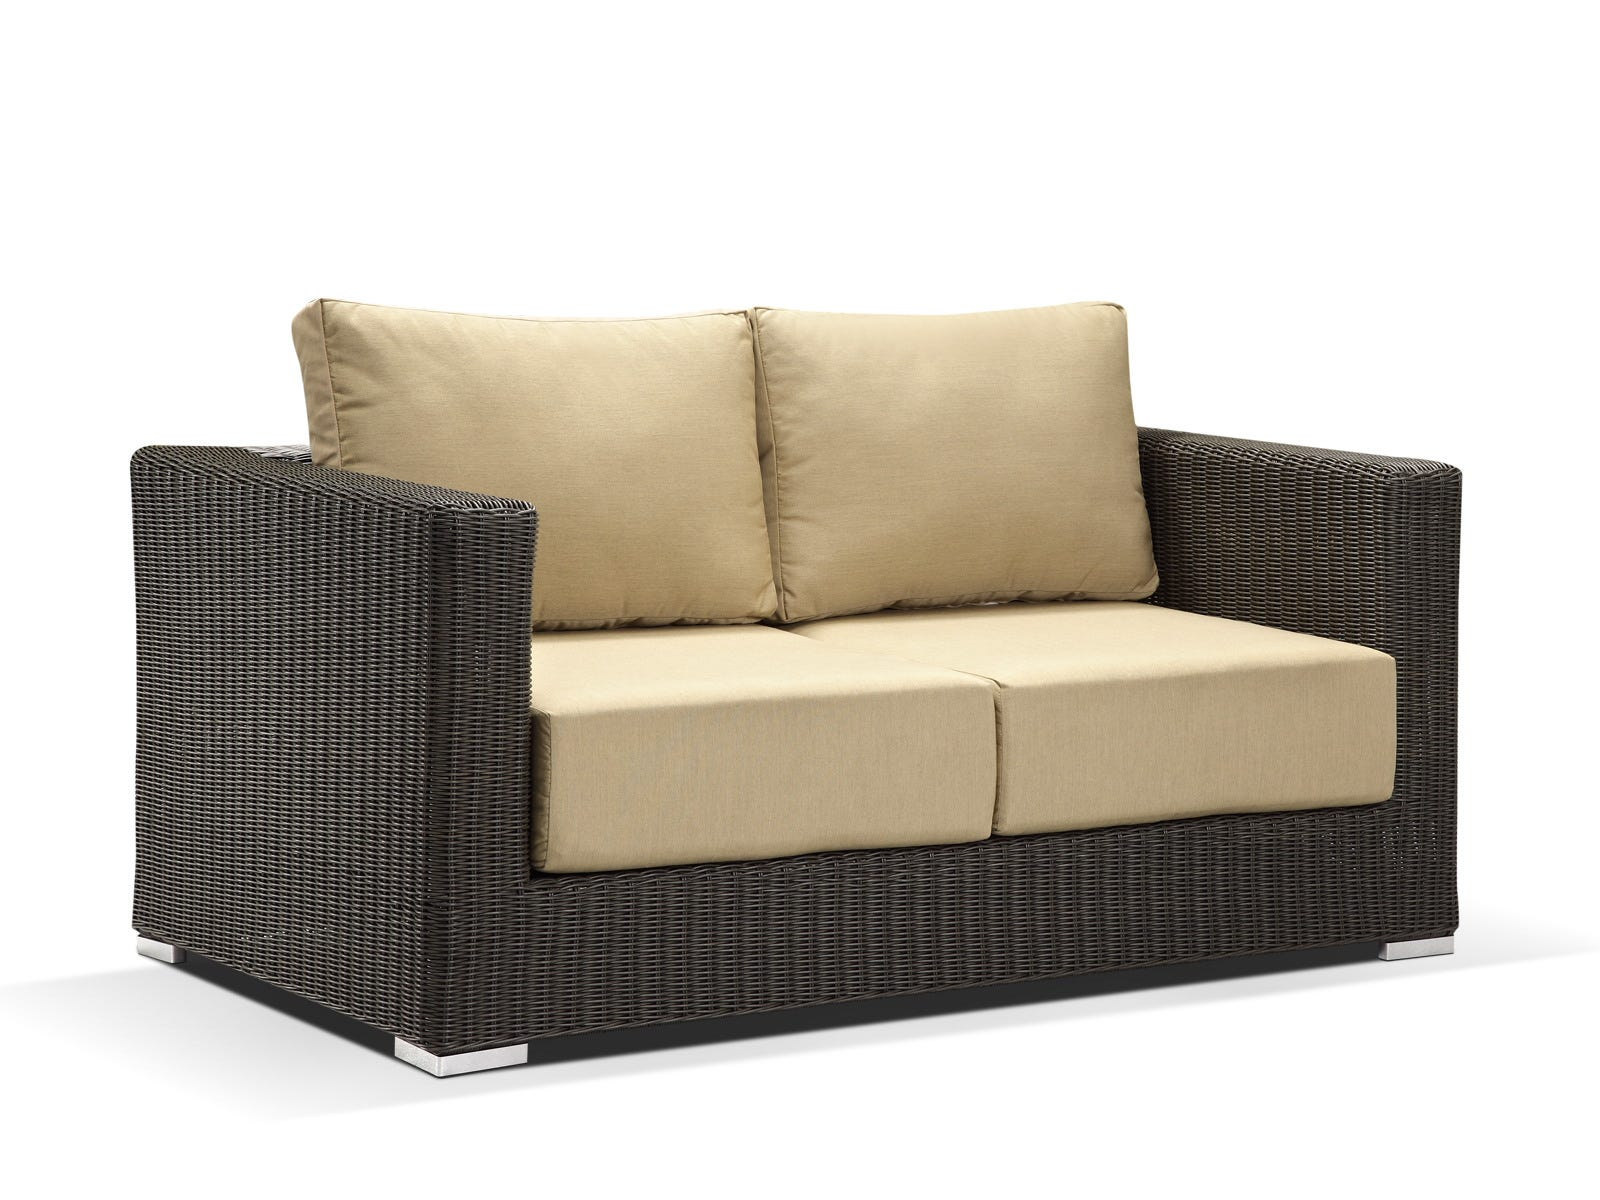 outdoor-furniture-lounge-wicker-sunbrella-raffles-2seater-1pc-winston-heatherbeige-web